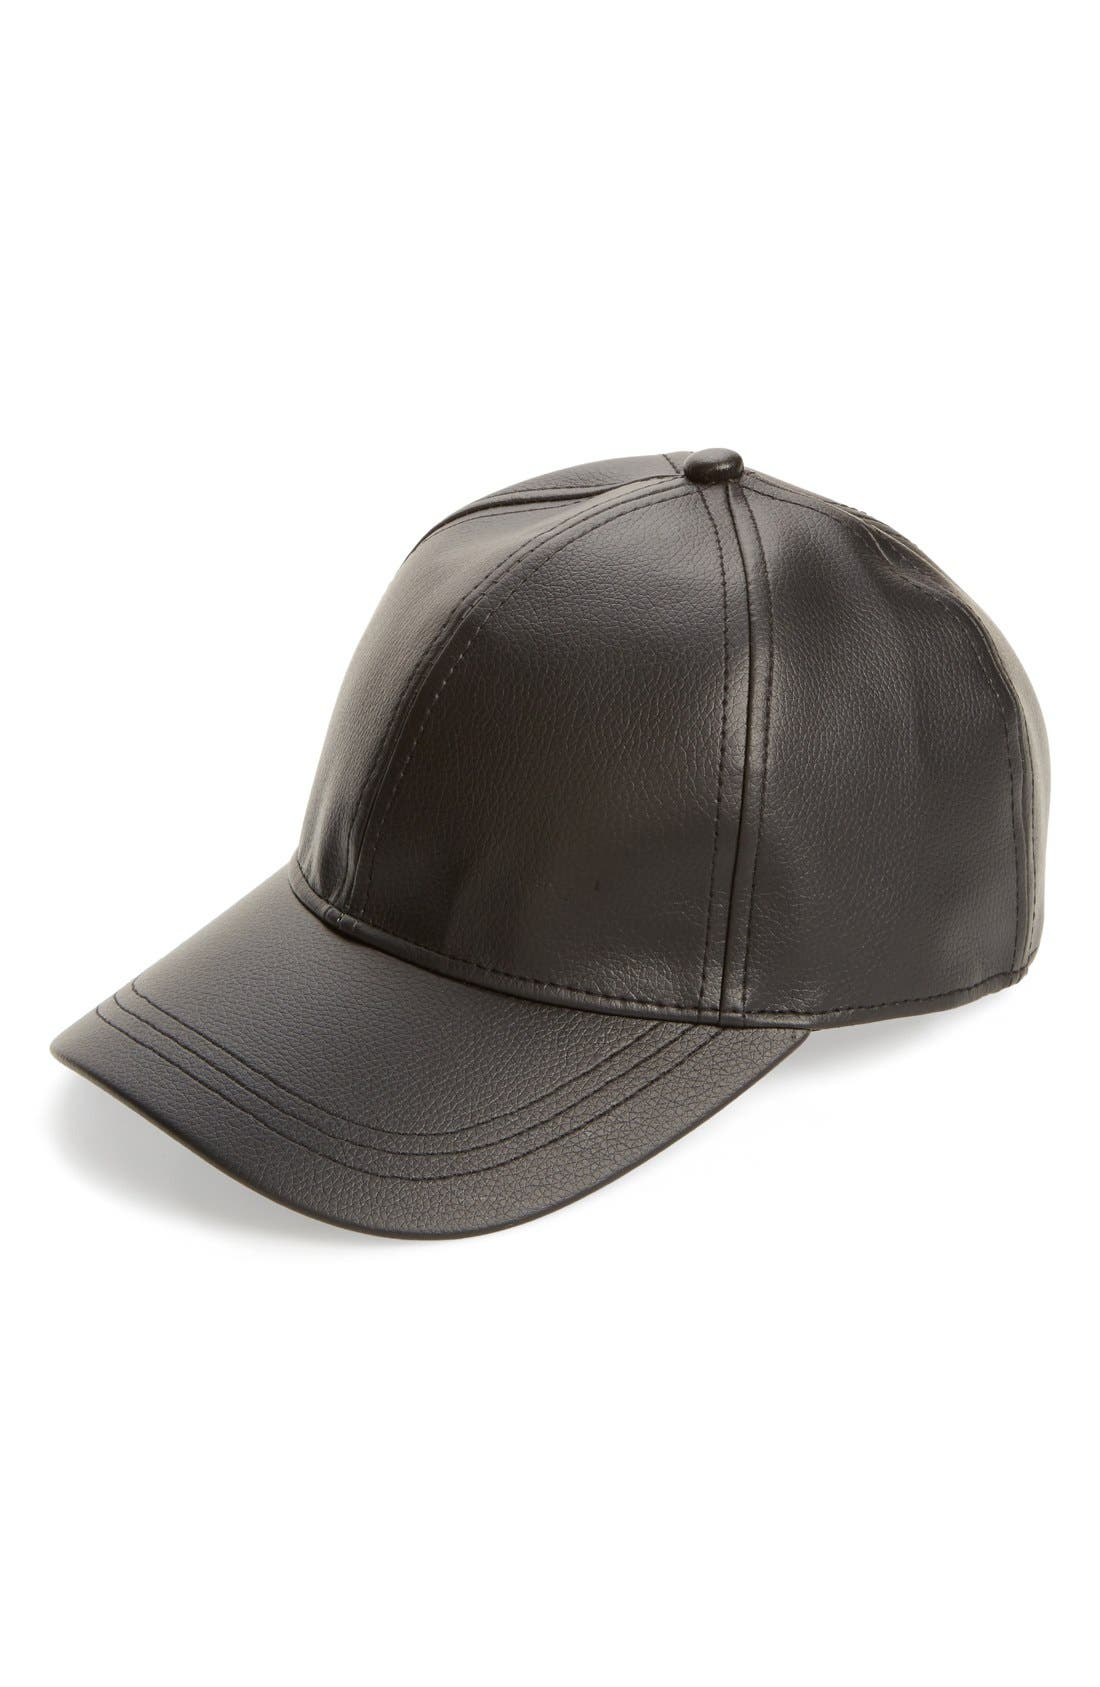 Alternate Image 1 Selected - August Hat Faux Leather Baseball Cap